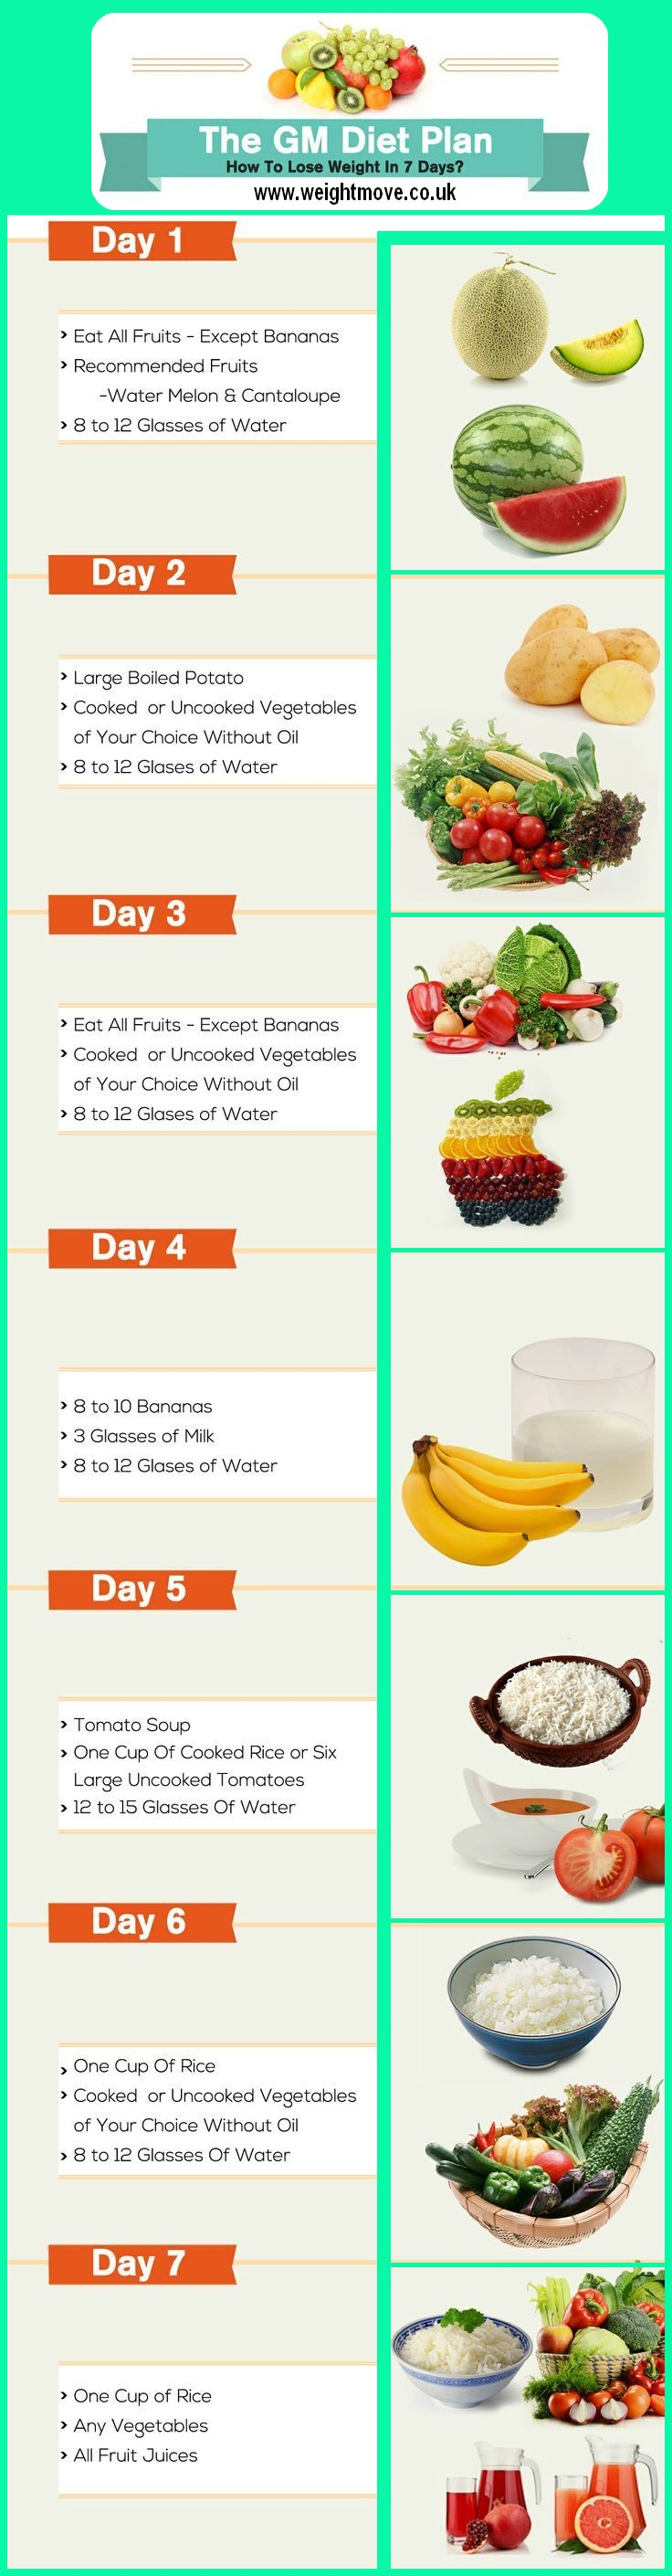 Diabetes Diet And Food Tips Exercises Fitness Workout Gym